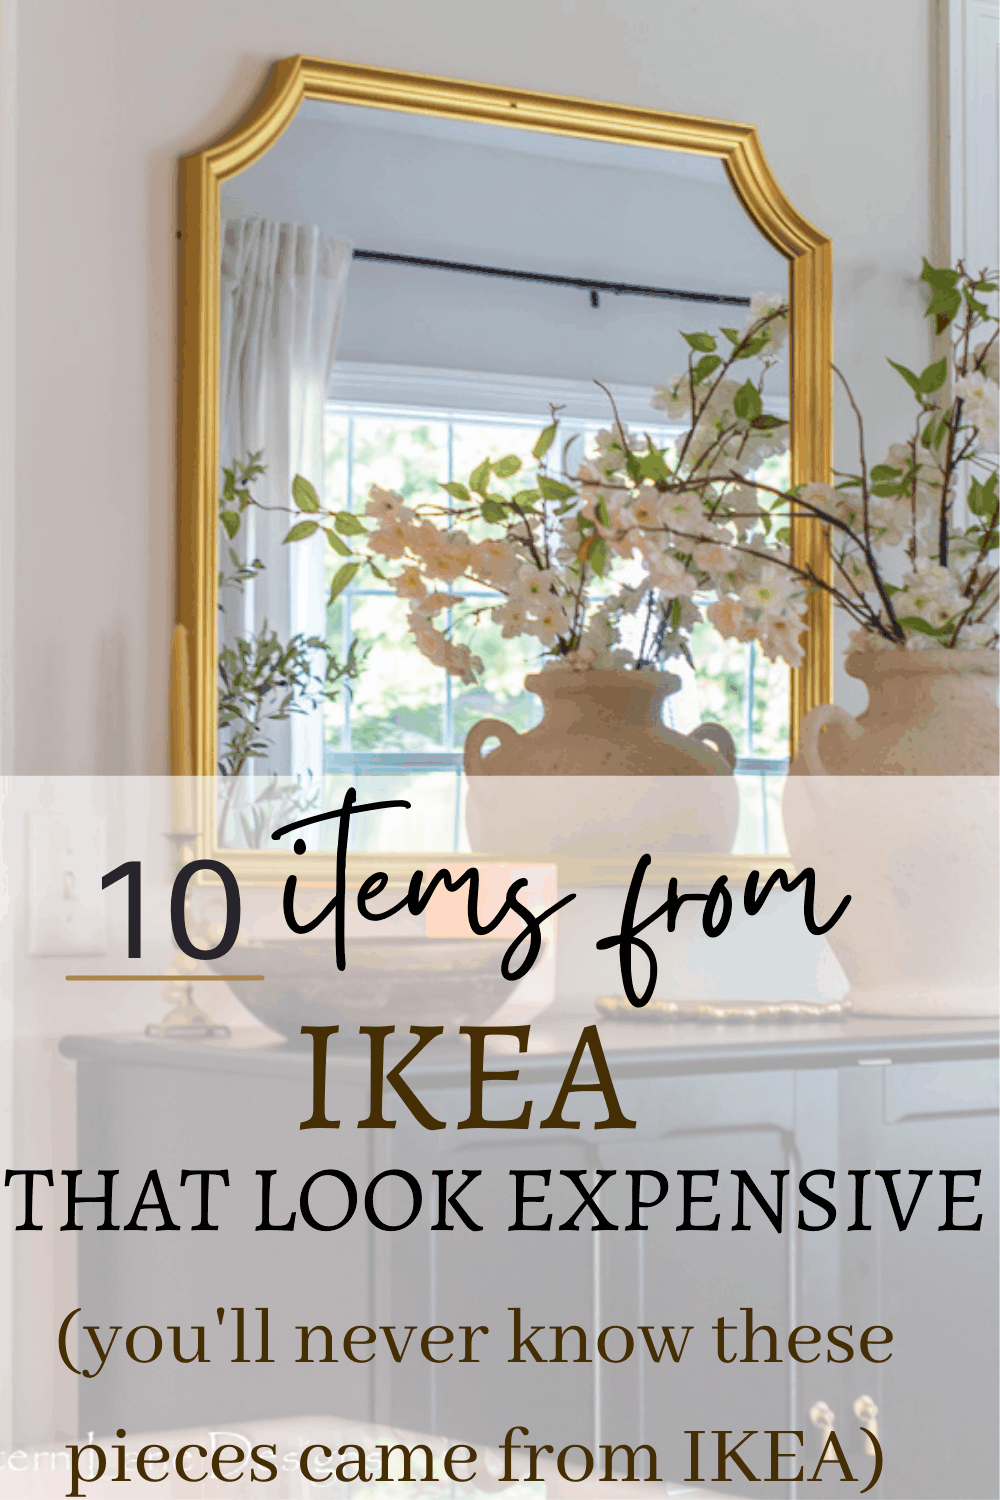 Items from IKEA that look expensive